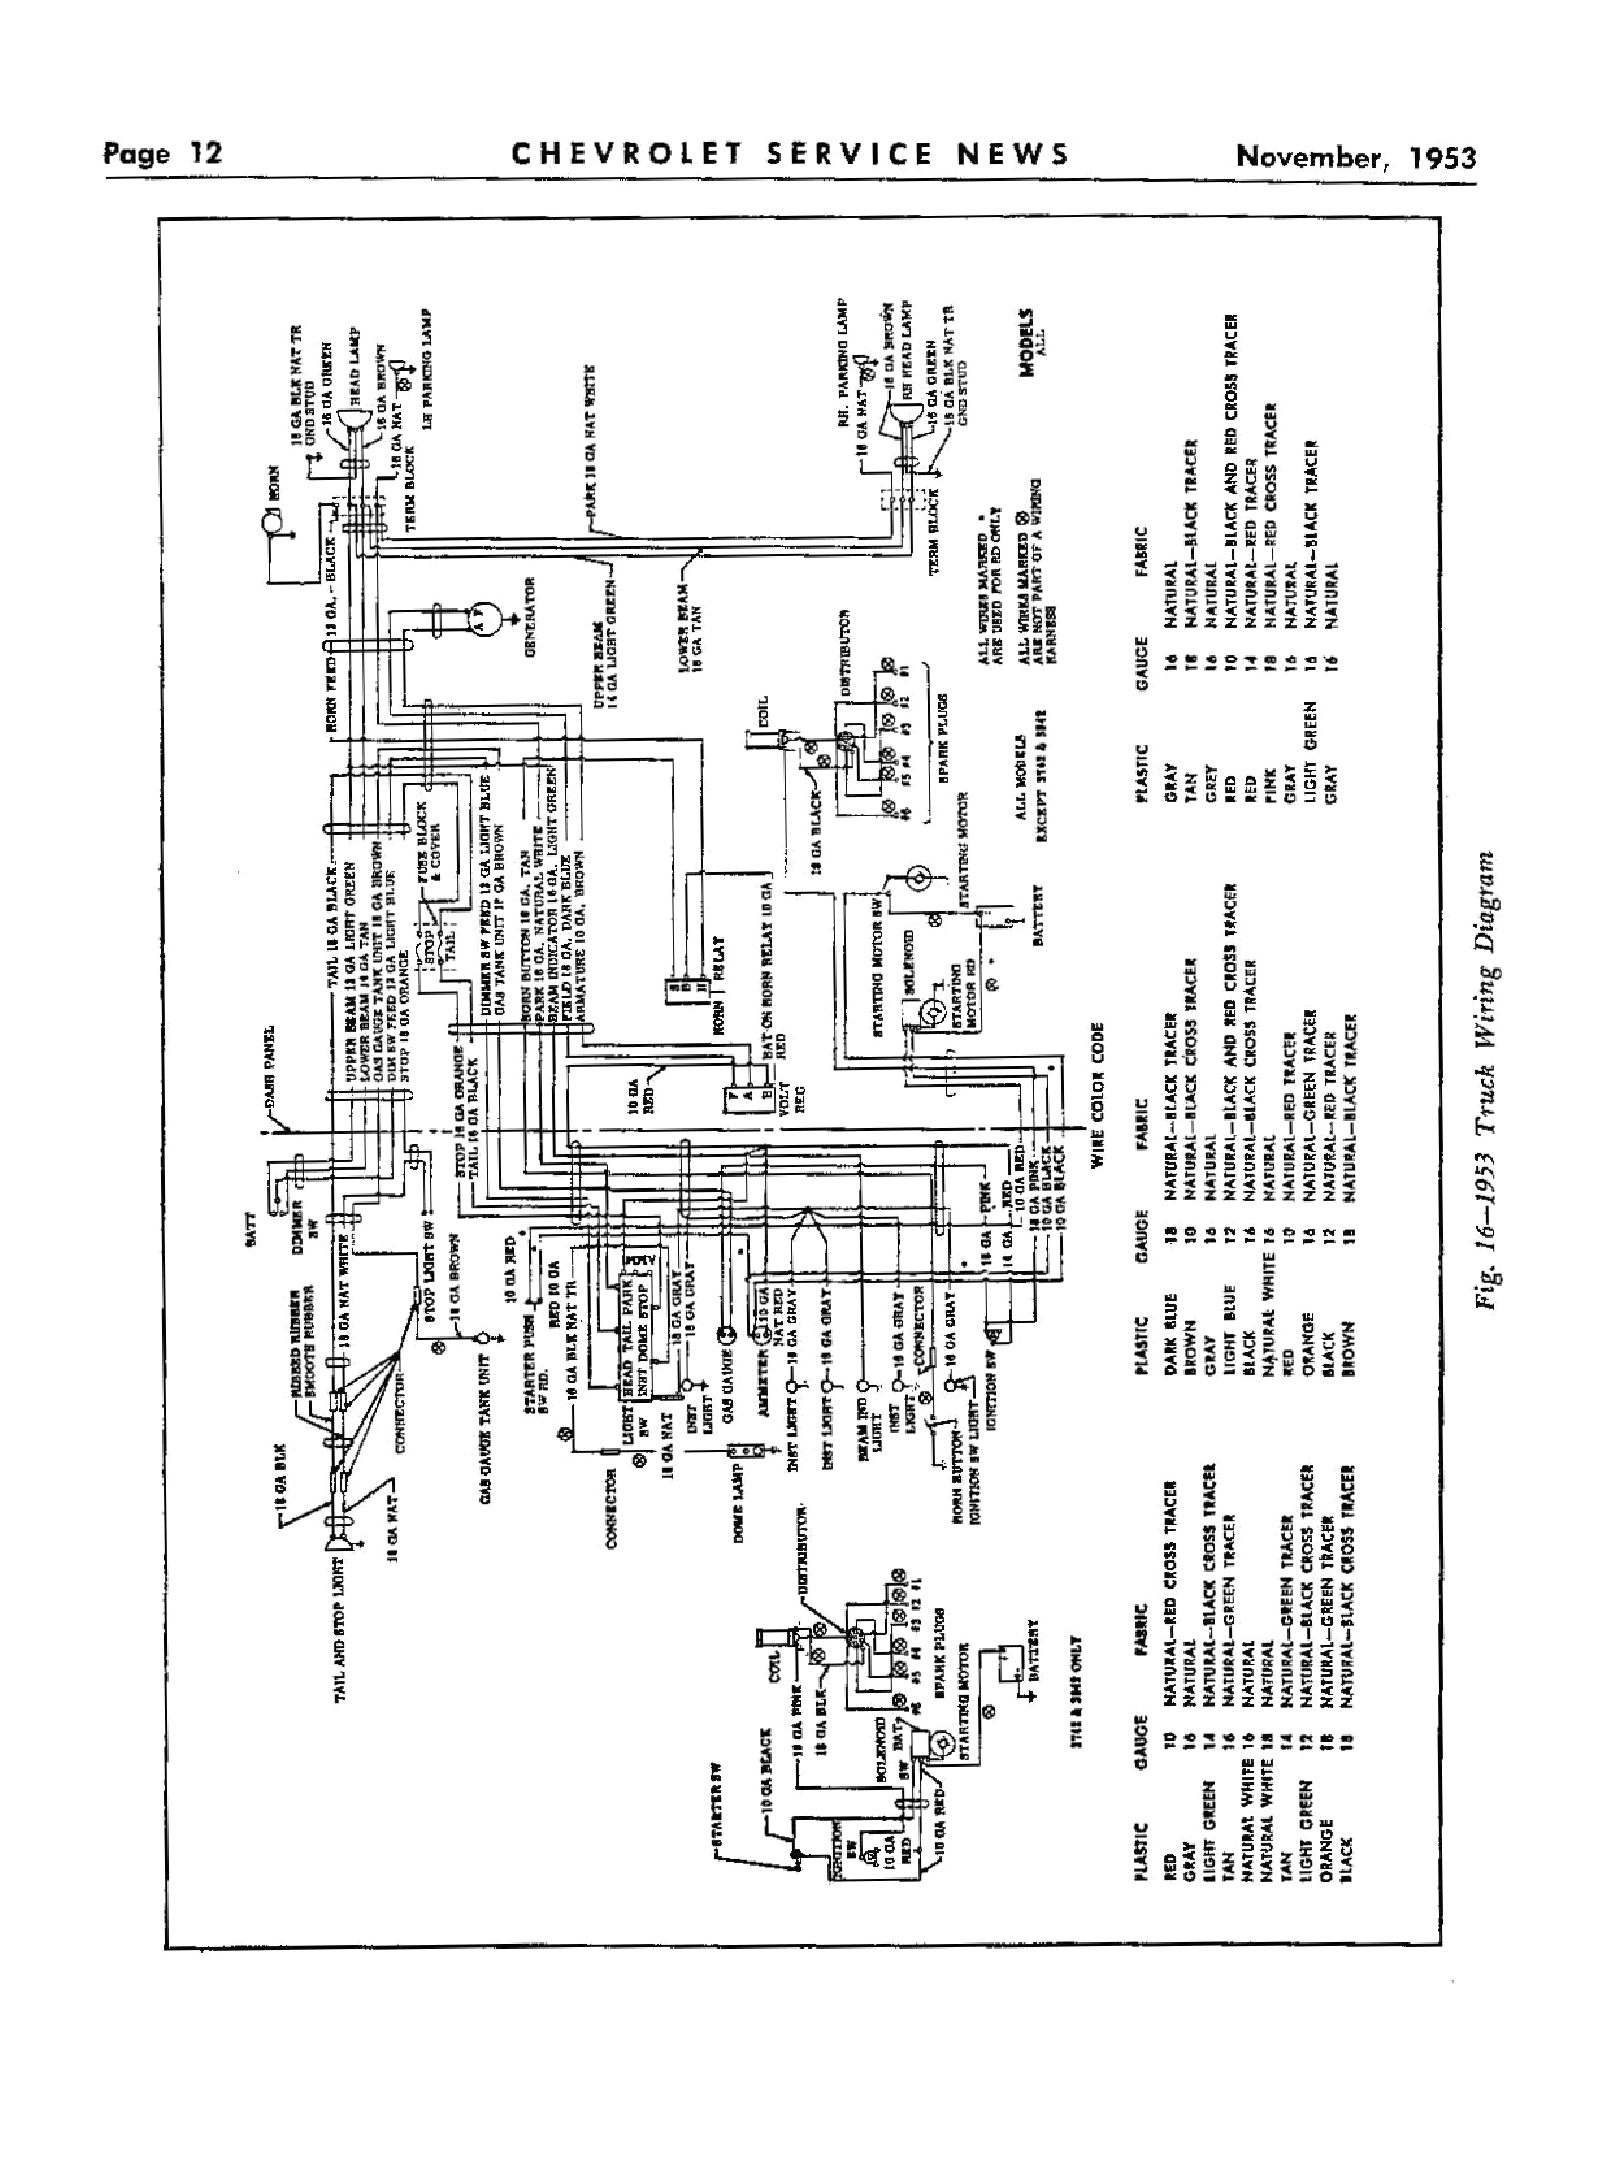 1956 Chevy Wiring Harness Diagram - Wiring Diagram Dash on chevy pickup headlamp wiring, chevy k10 6 inch lift, chevy tail light diagram, 89 chevy truck light diagram,